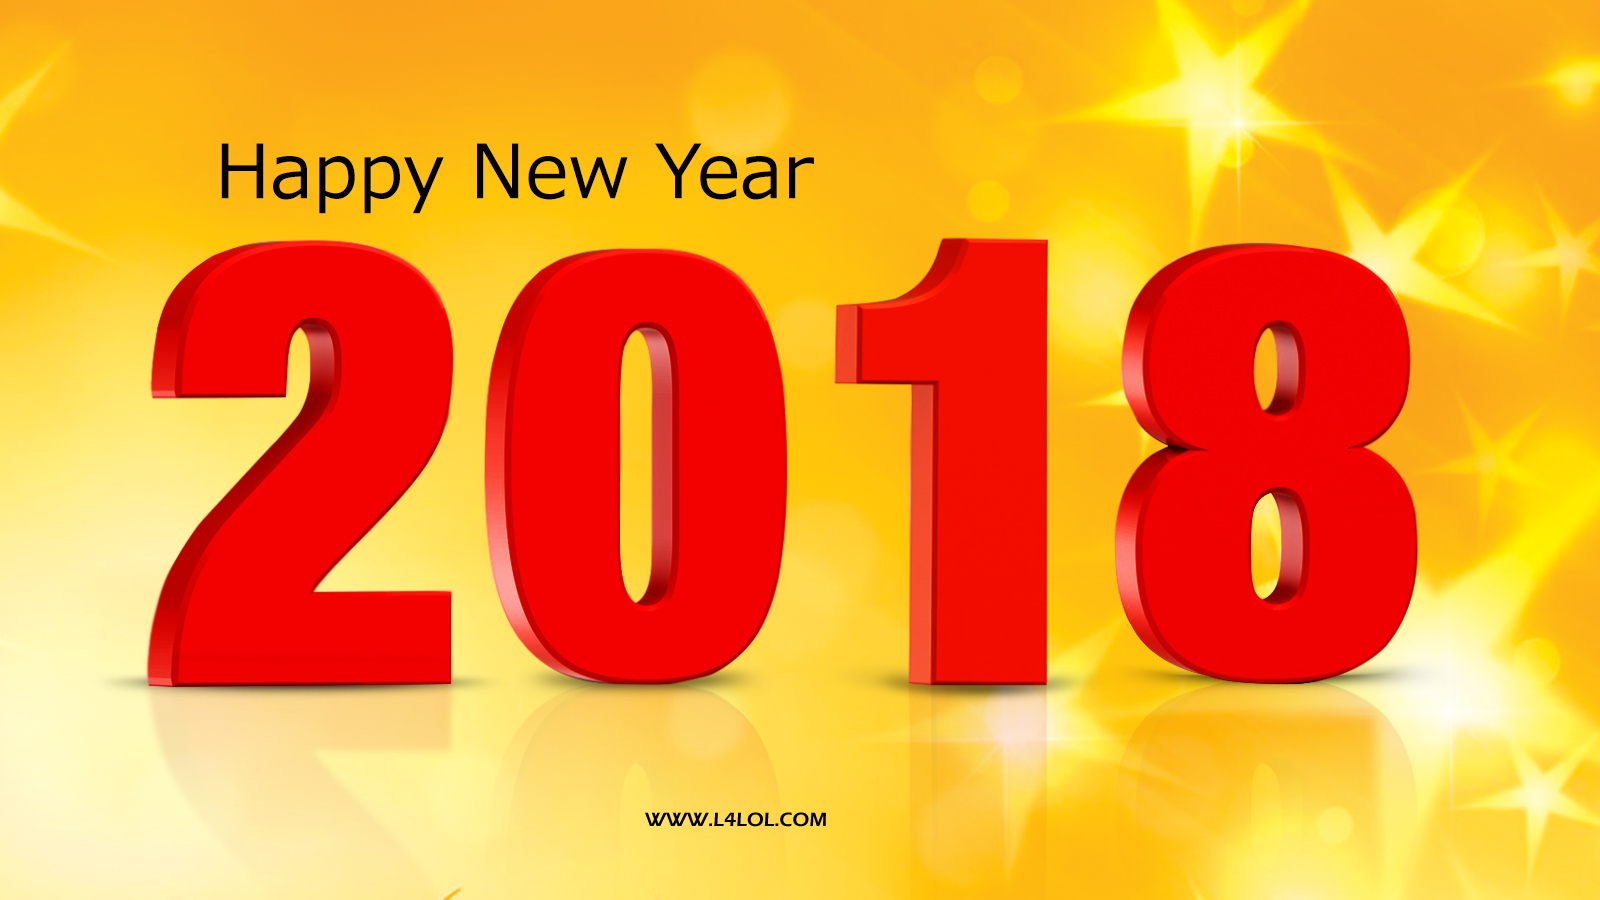 {*Free Download*}Happy New Year - 1033.8KB